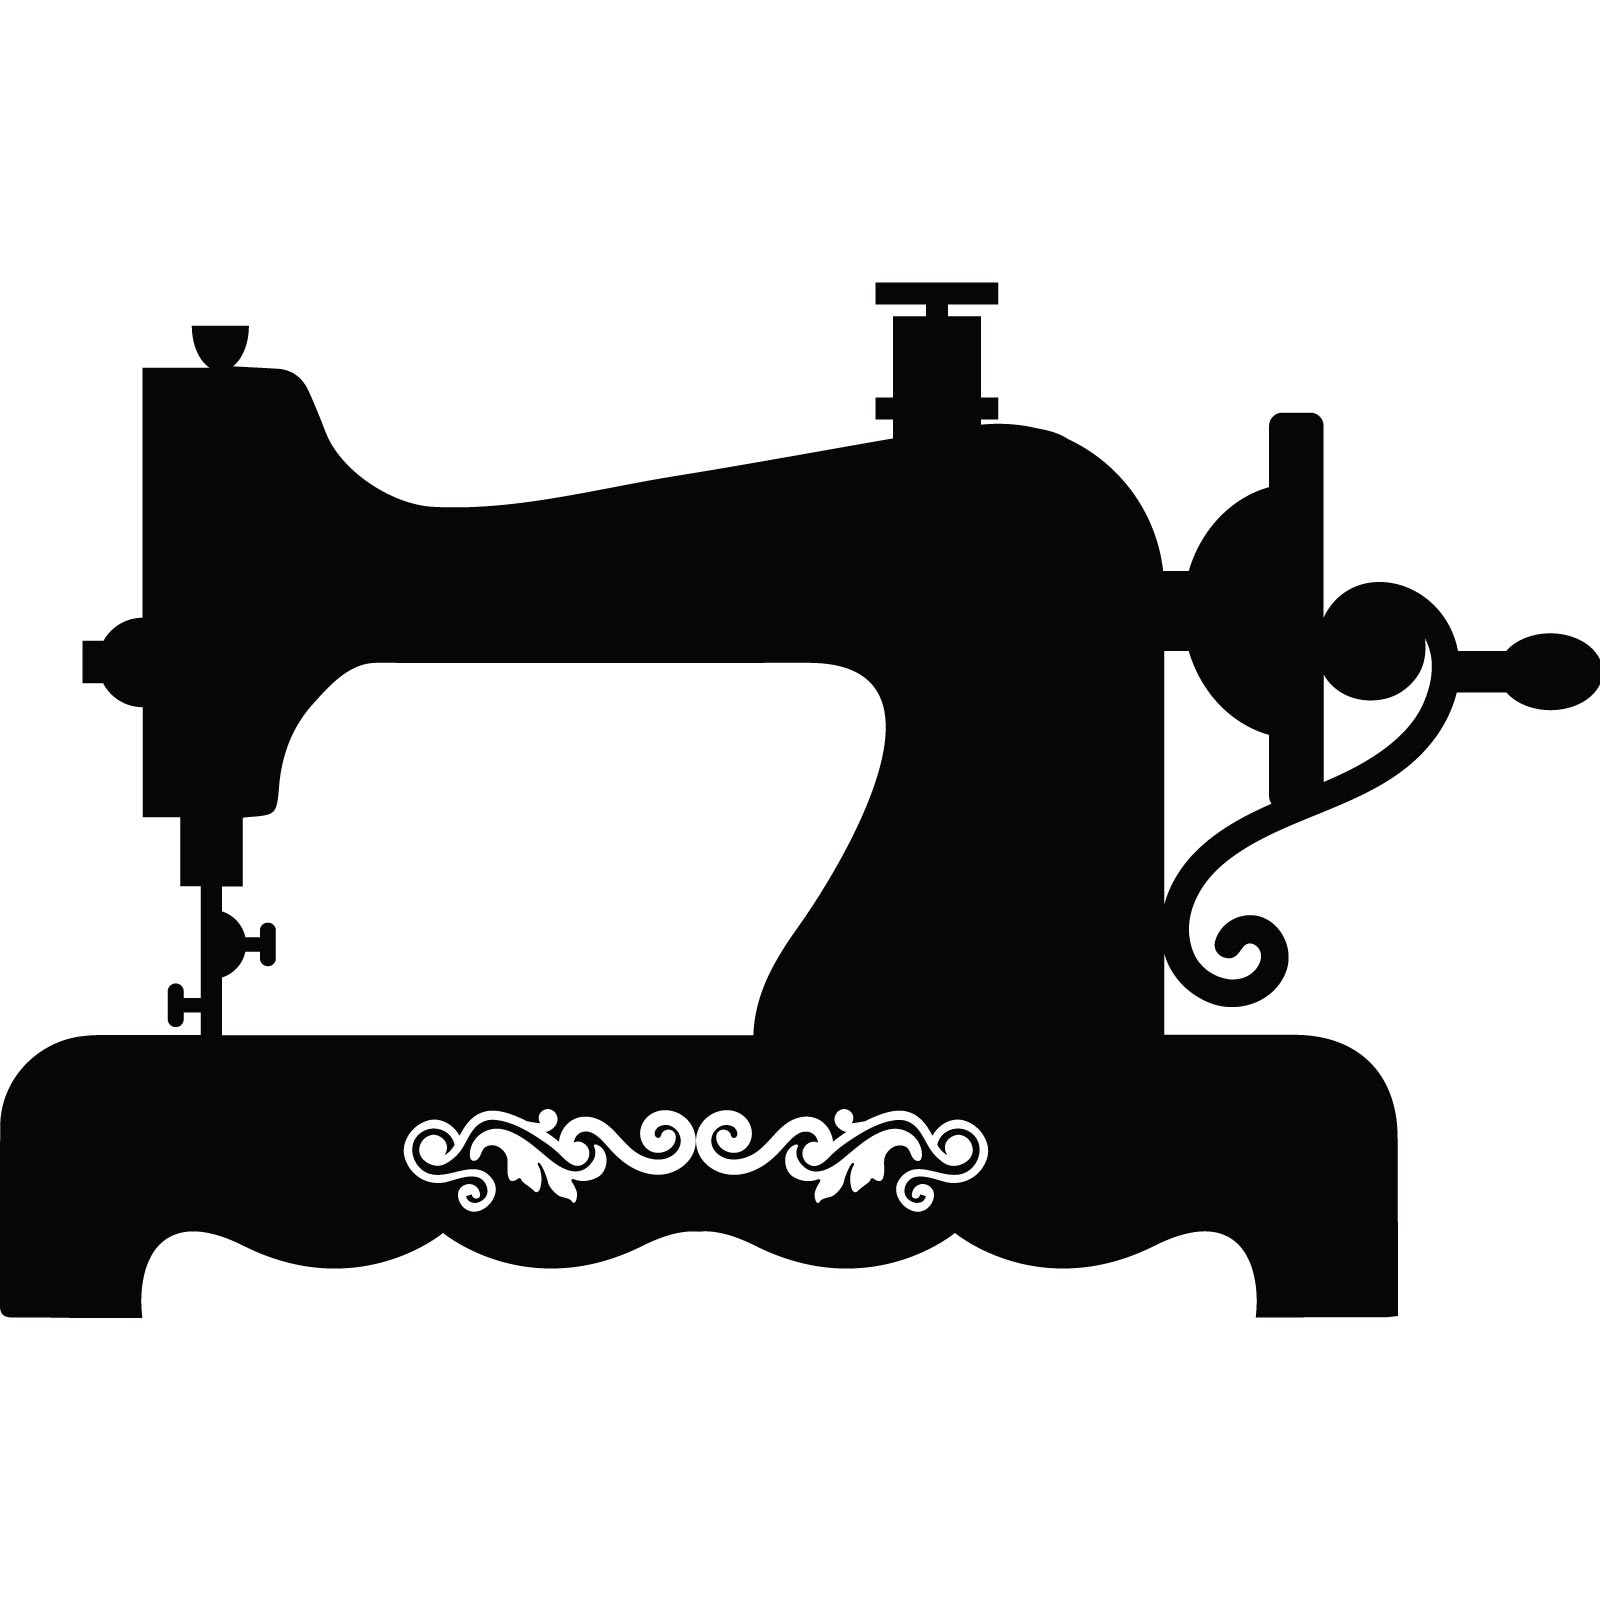 Sewing Machine Silhouette Clip Art Pictures to Pin on Pinterest.